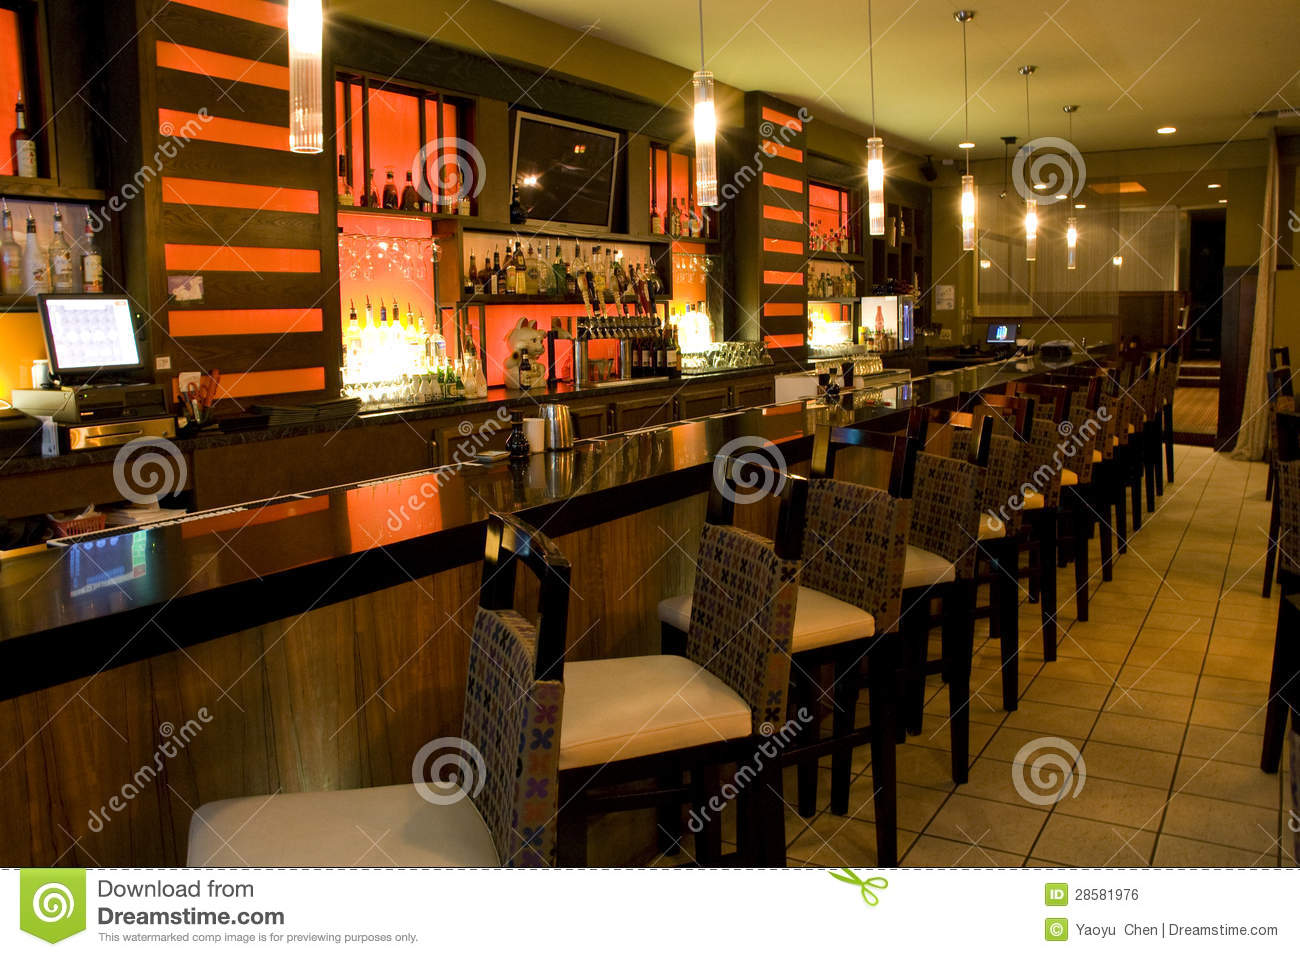 Luxury Bar Restaurant Royalty Free Stock Image  Image 28581976